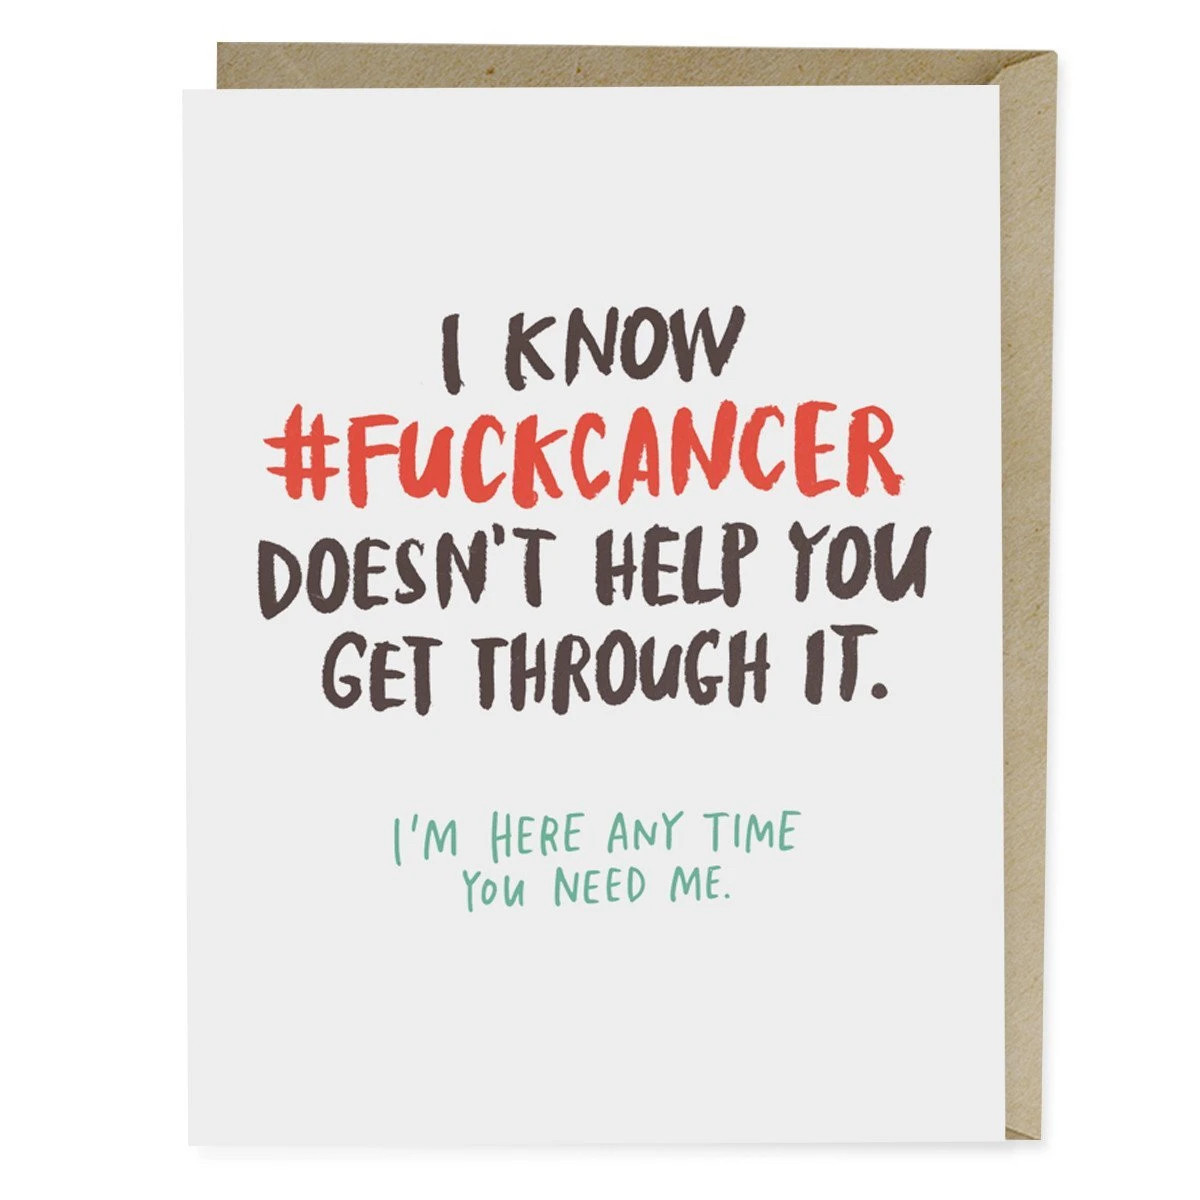 Emily McDowell - EMM EMMGCSY0024 - Fuck Cancer Doesn't Help